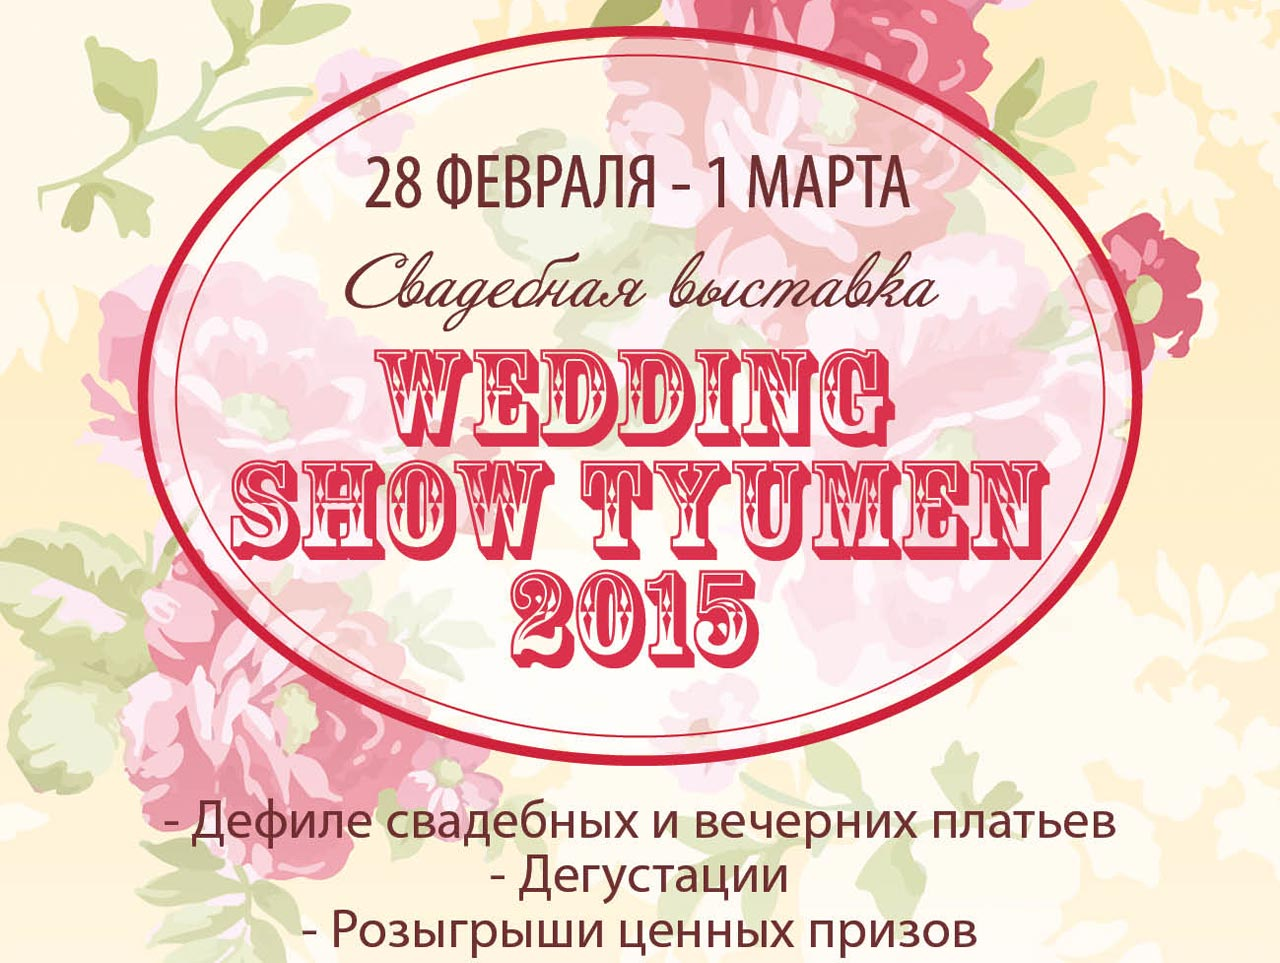 Wedding Show Tyumen 2015